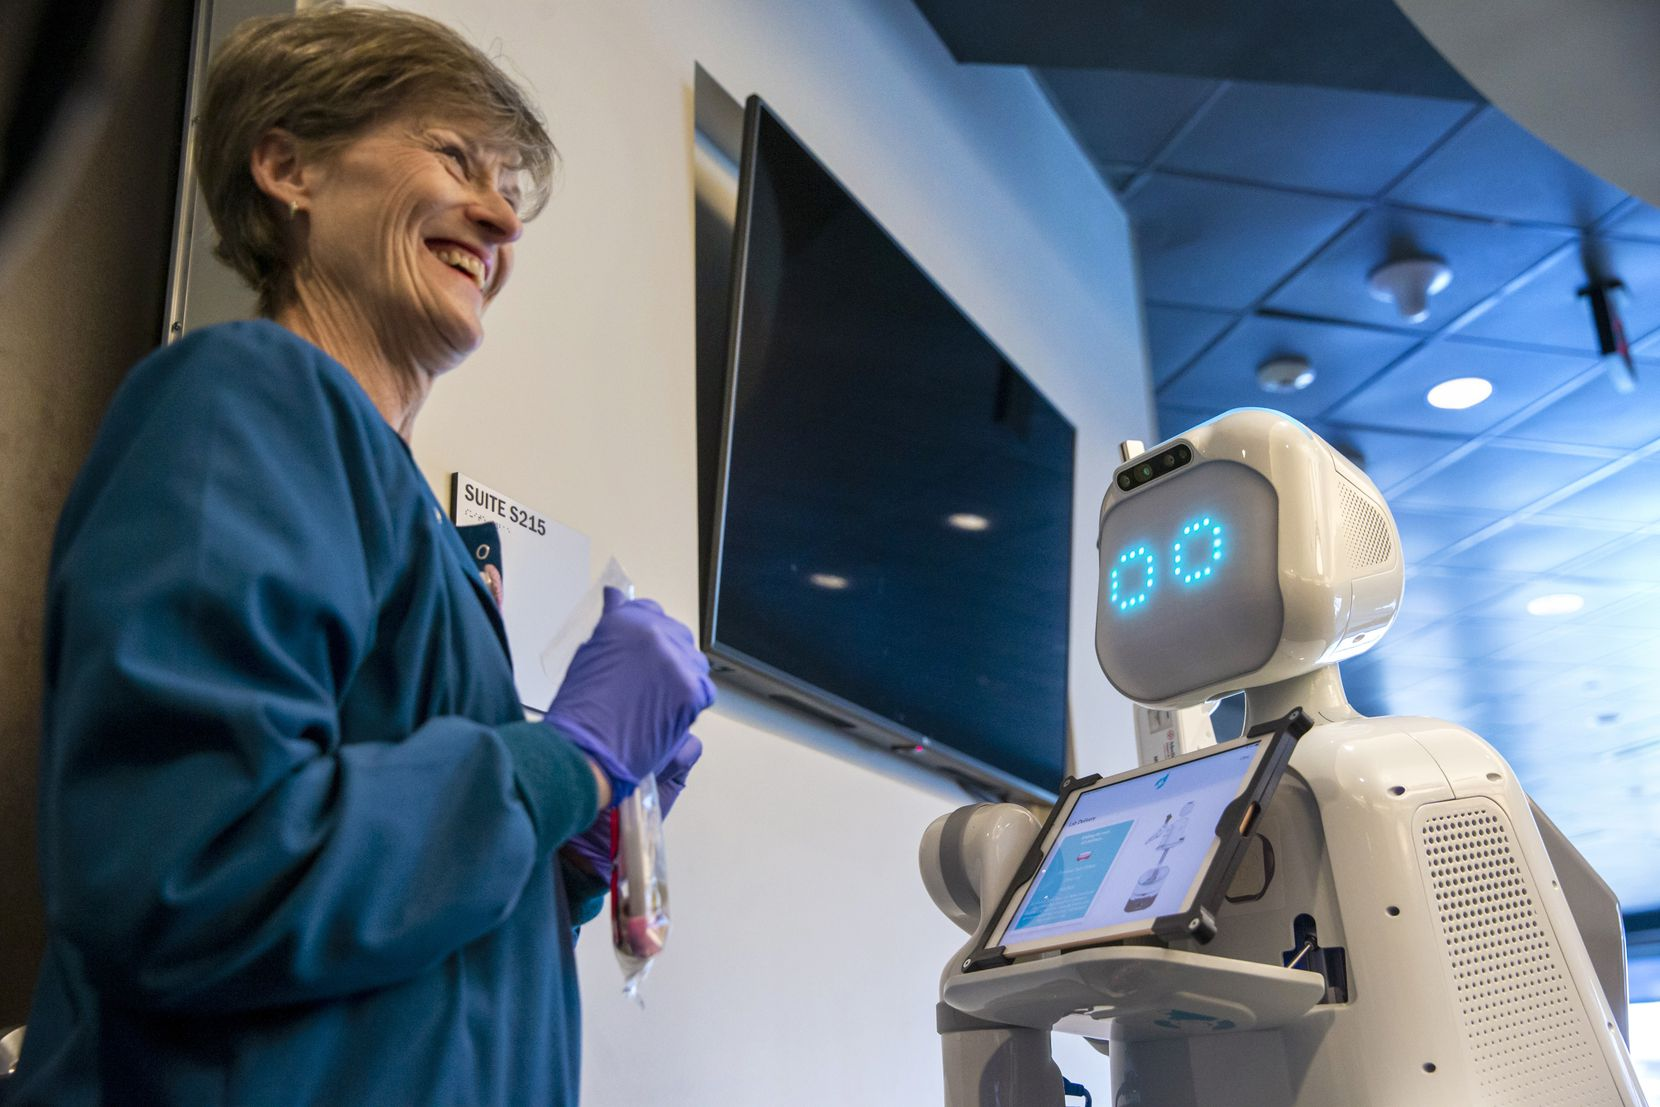 Medical technician Judy Erbacher retrieves a sample product from Moxi, a care assistant robot, during a specimen transfer demonstration at the Medical City Heart and Spine Hospital in Dallas on Friday, Feb. 14, 2020. The hospital is the first to use Austin-based Diligent Robotics robots as medical assistants.